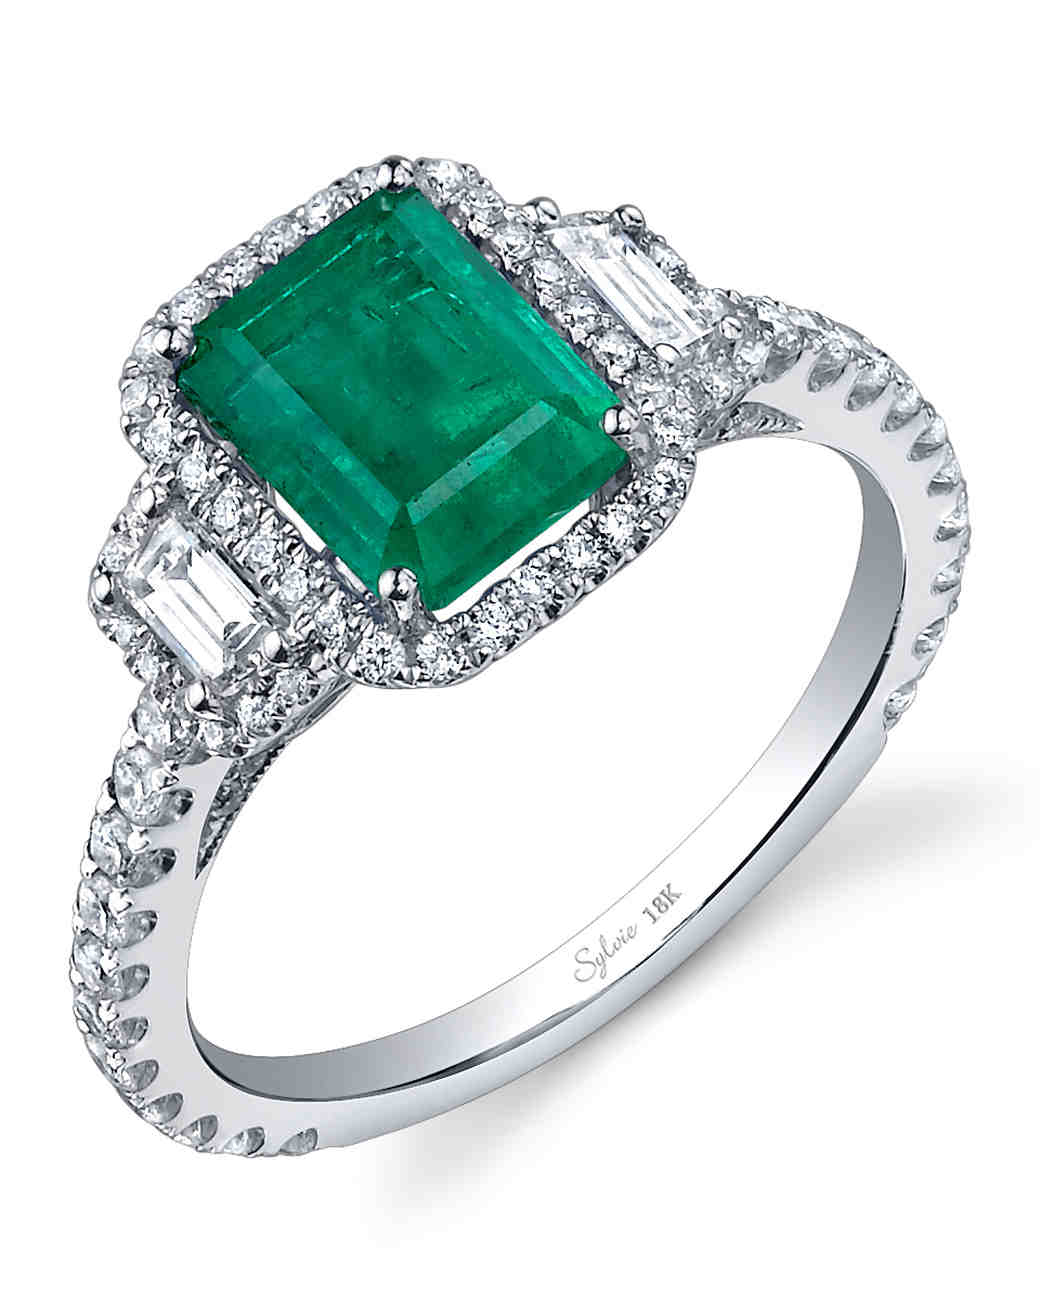 emerald engagement rings slyvie collection emerald engagement ring ysiojnk